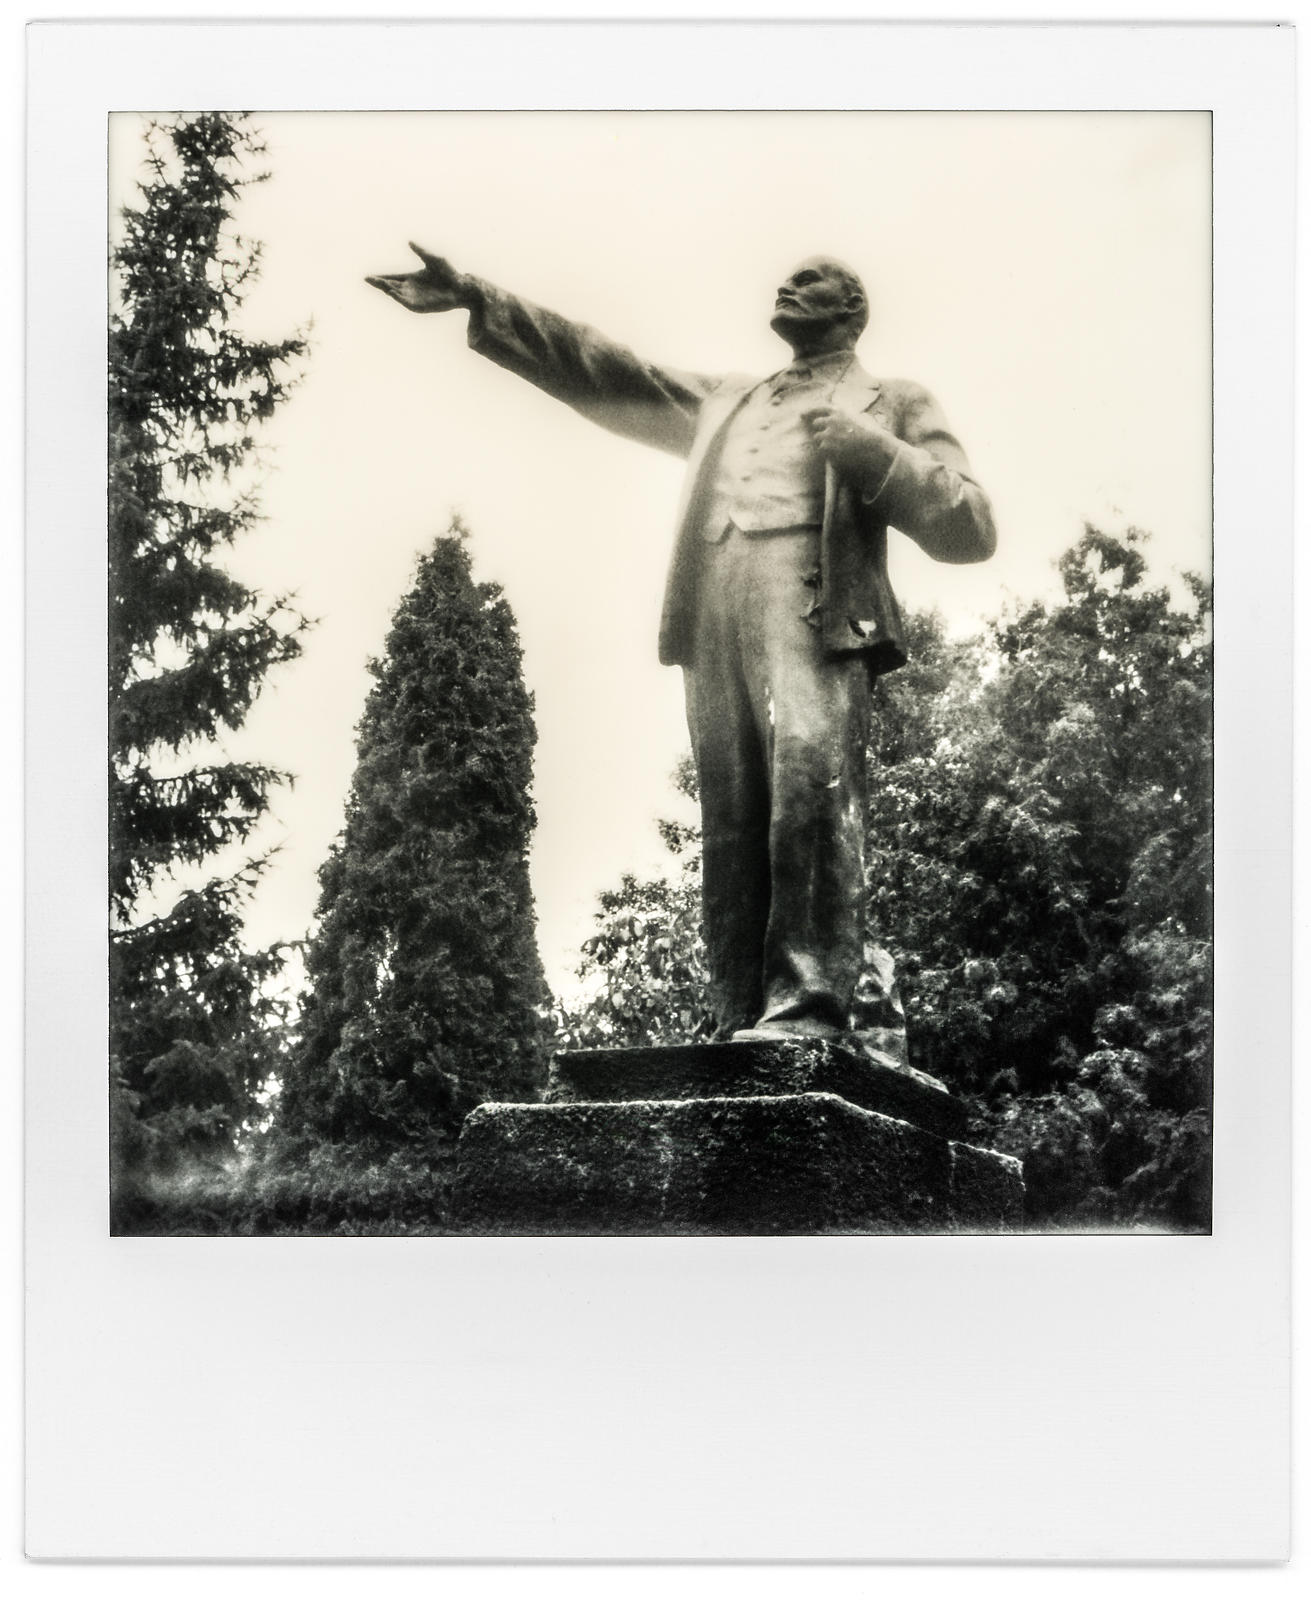 photo-polaroid-tchernobyl-chernobyl-32